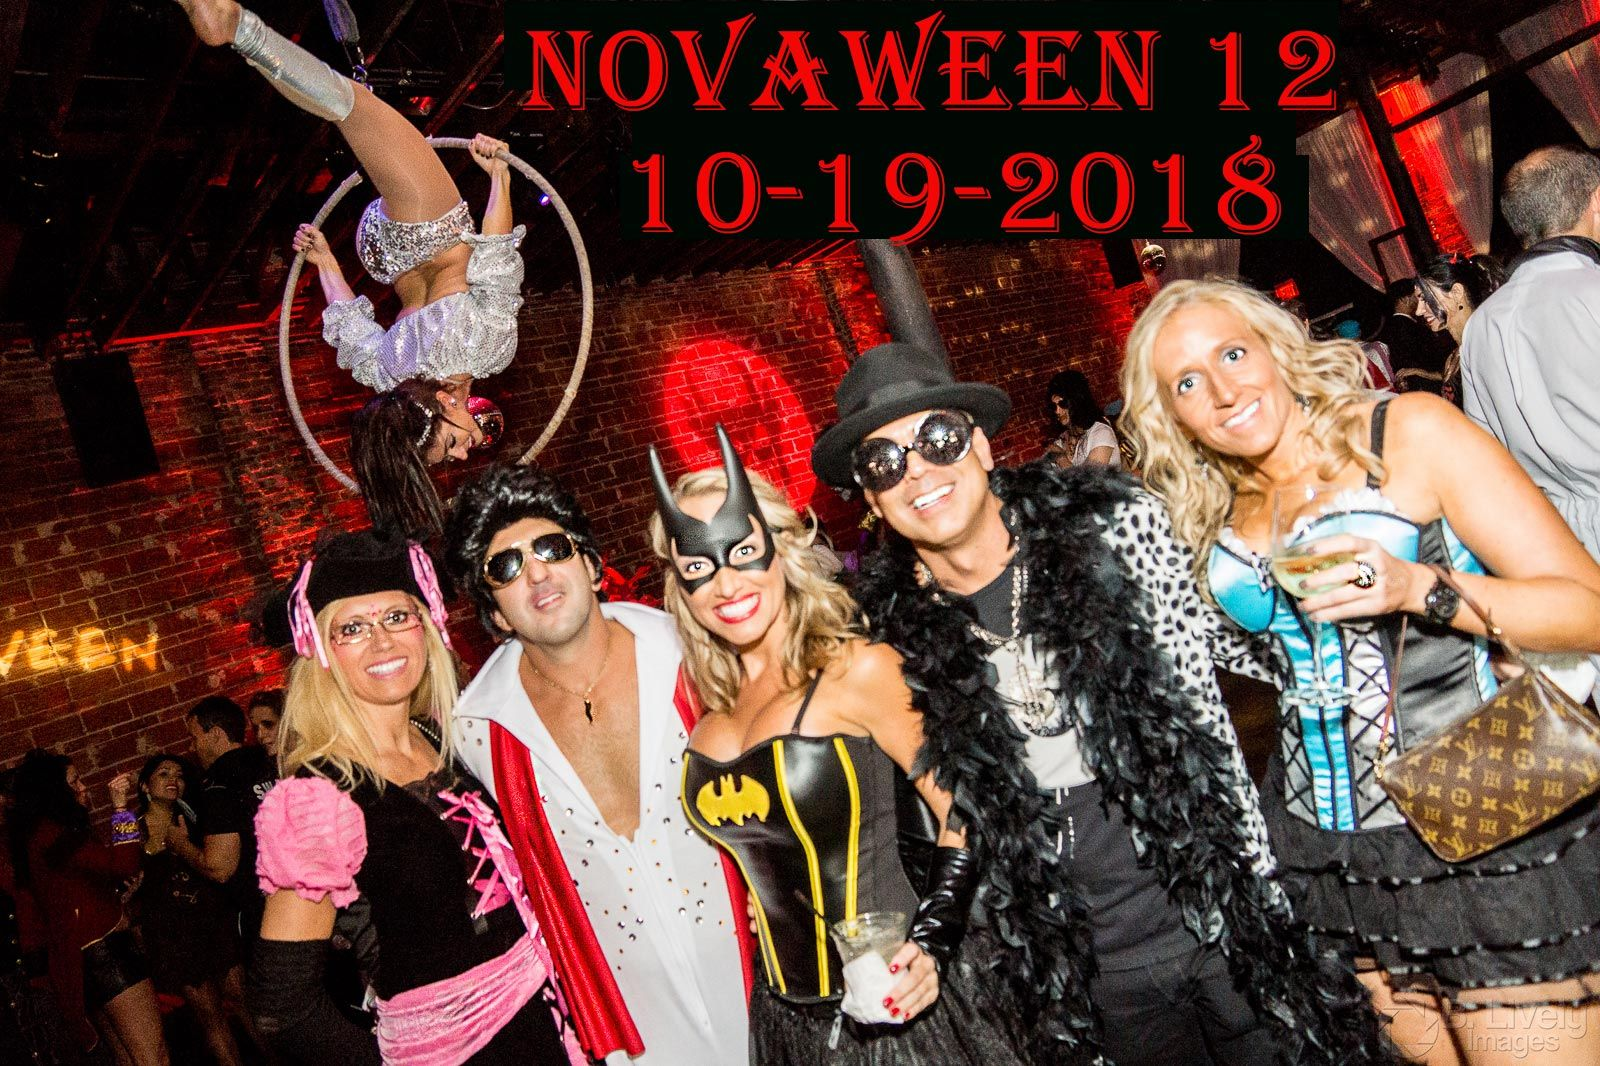 2018 10-19 Friday is Novaween 12 at Historic downtown St. Pete venue NOVA 535